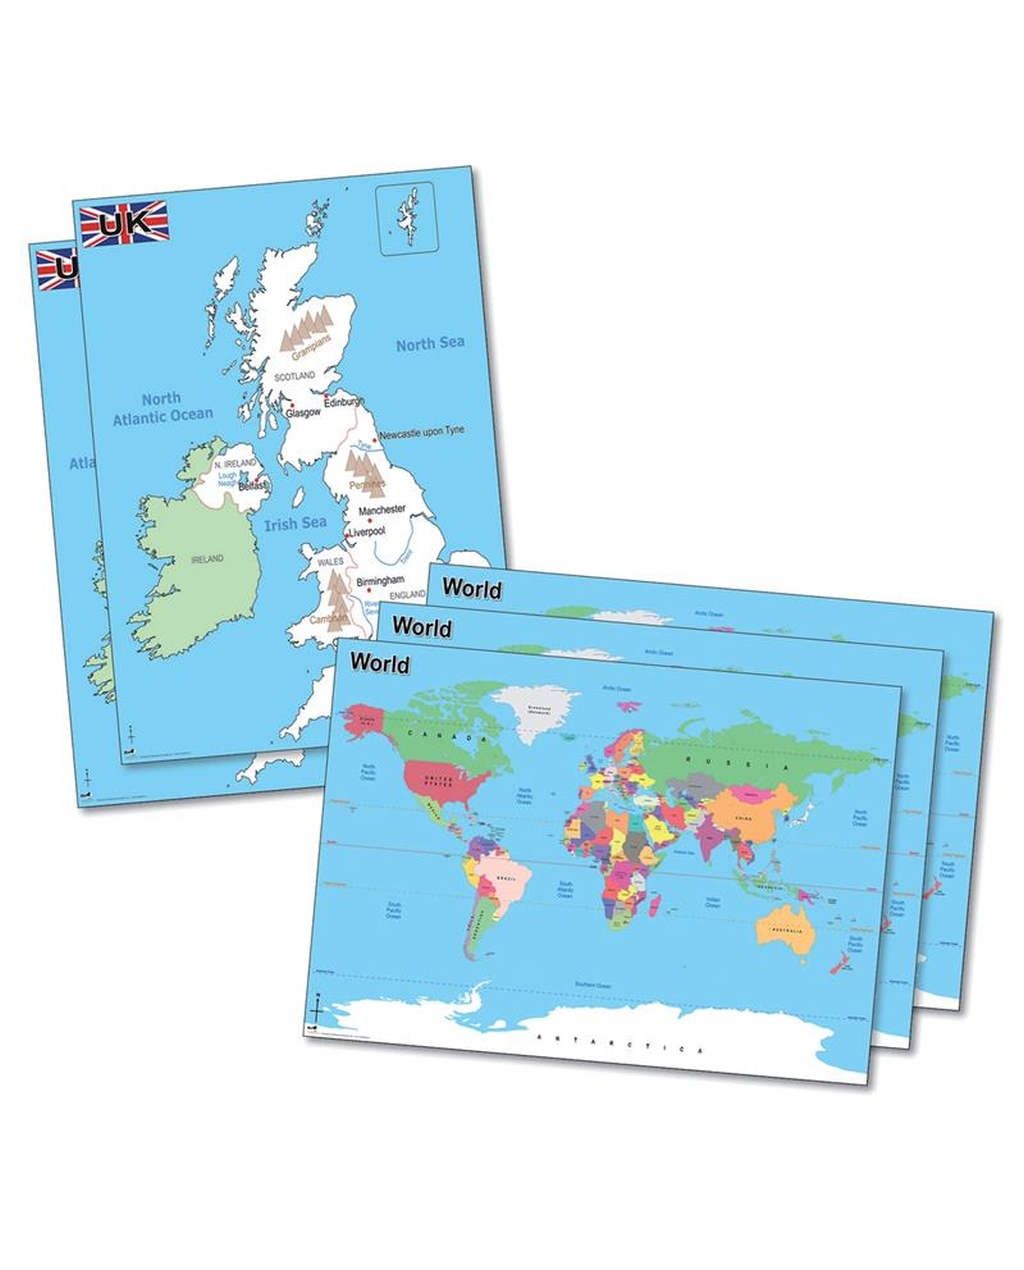 Deskmats-Simple Maps Deskmats